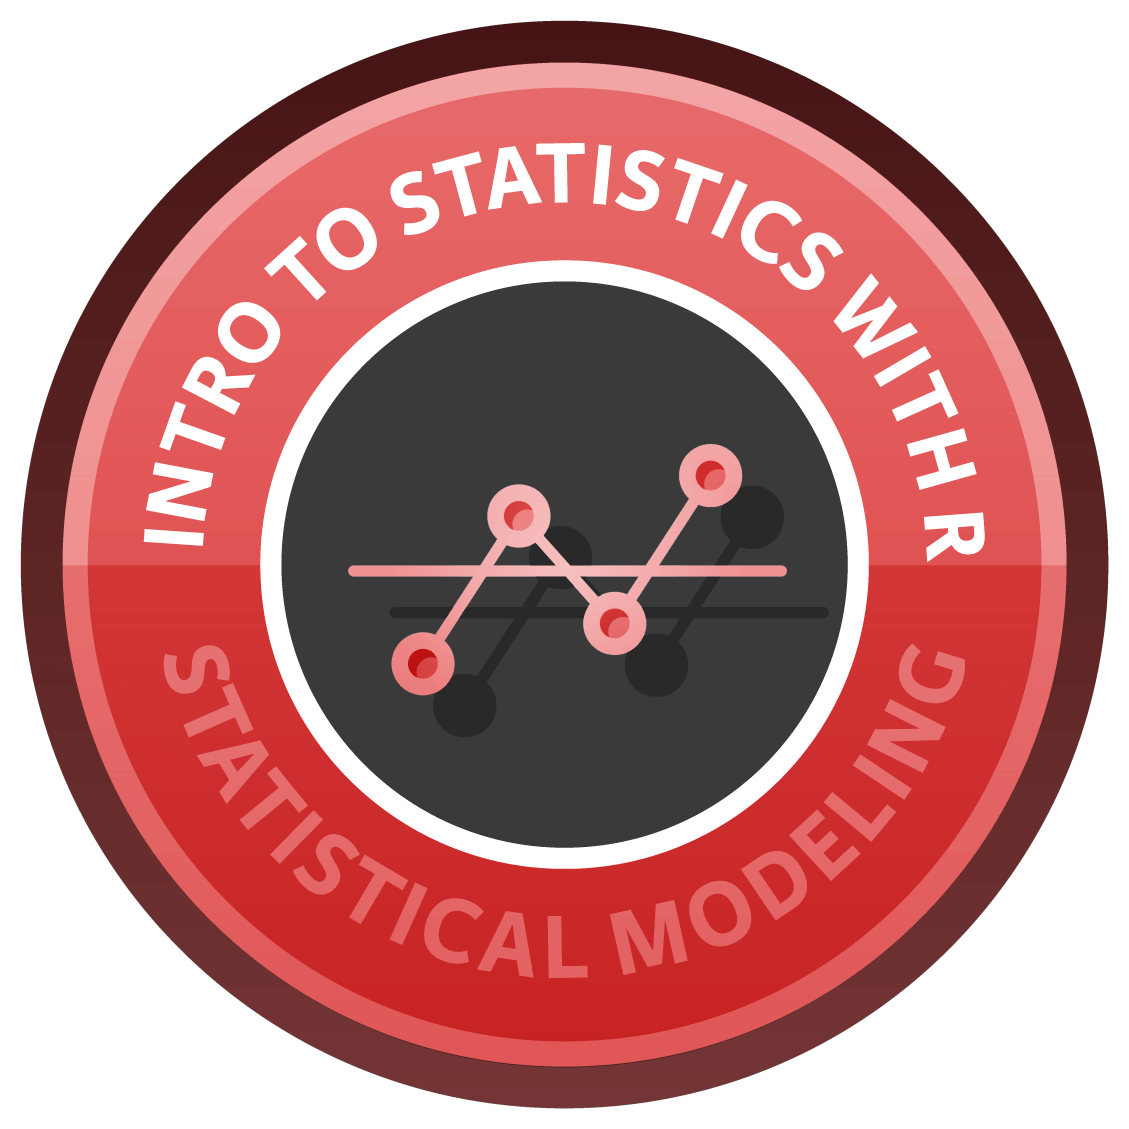 Intro to Statistics with R: Correlation and Linear Regression